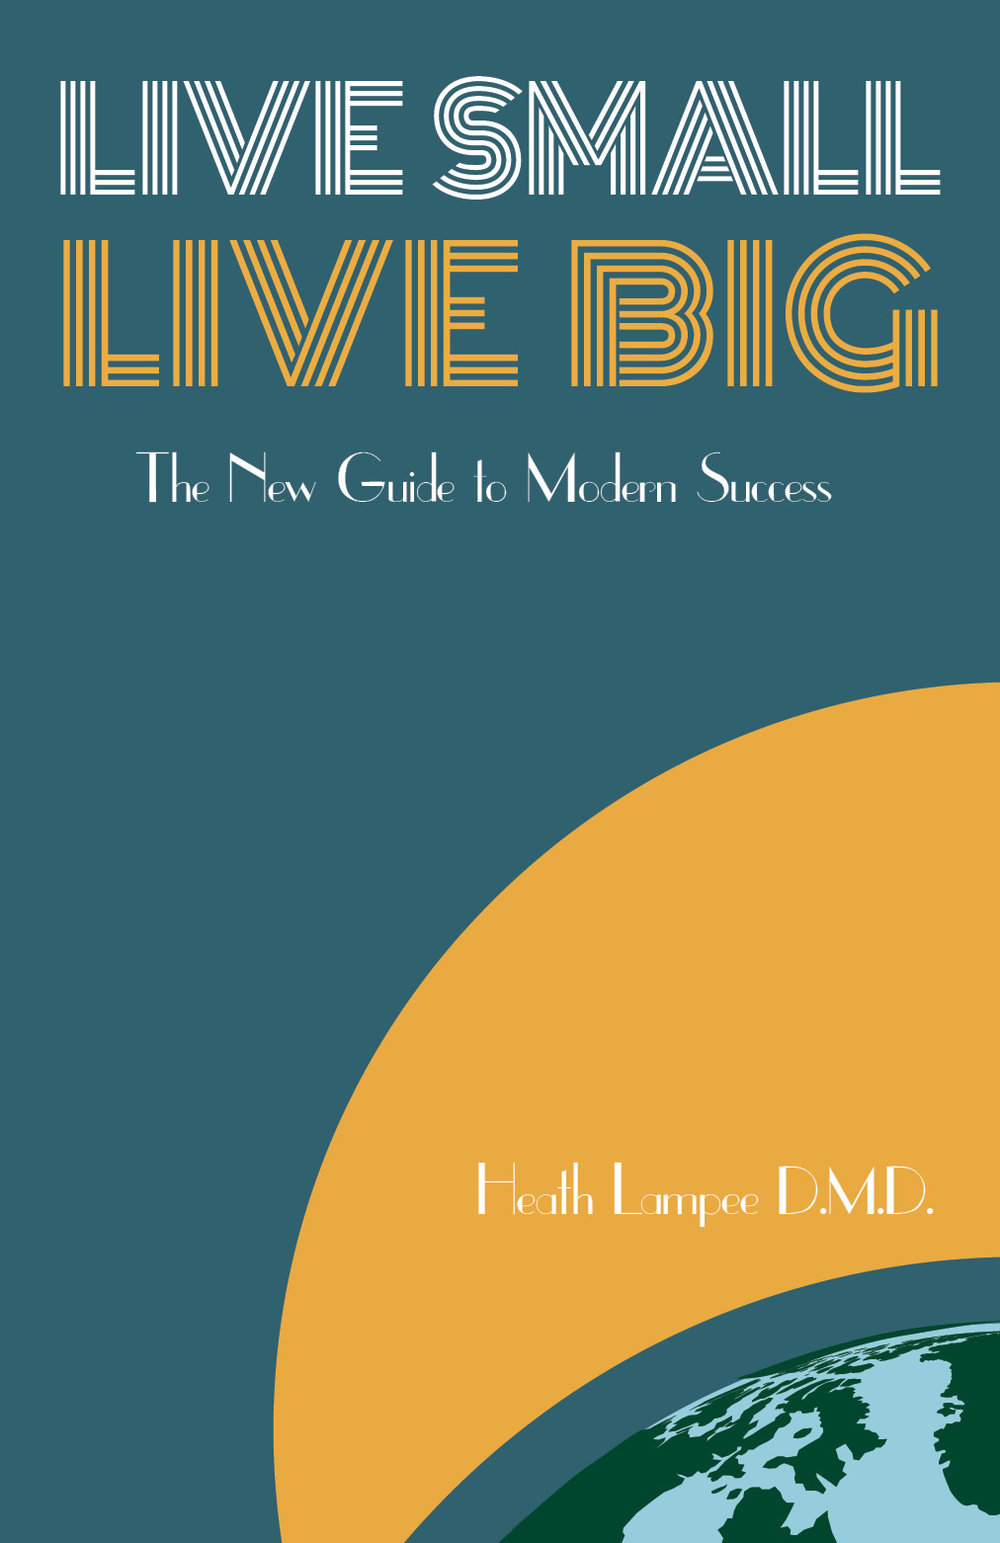 Live Small, Live Big (Sleep Dentistry Defined, 2017)